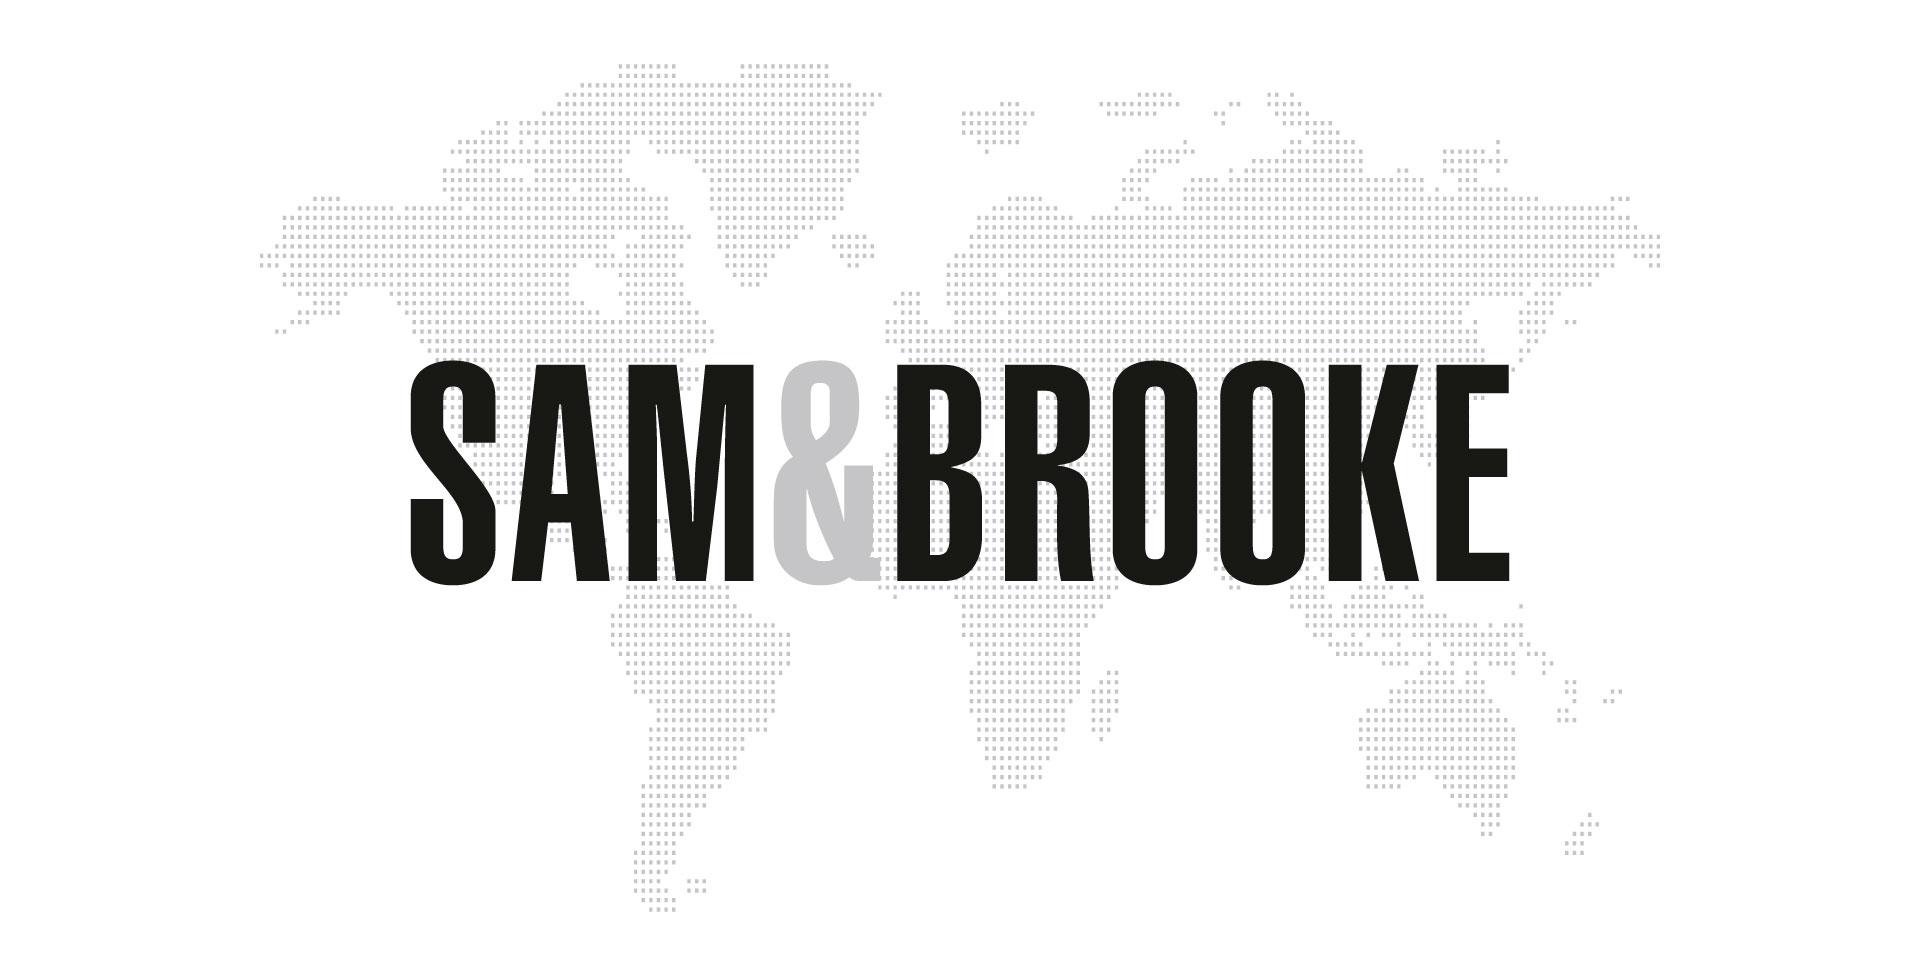 Sam & Brooke GmbH & Co. KG